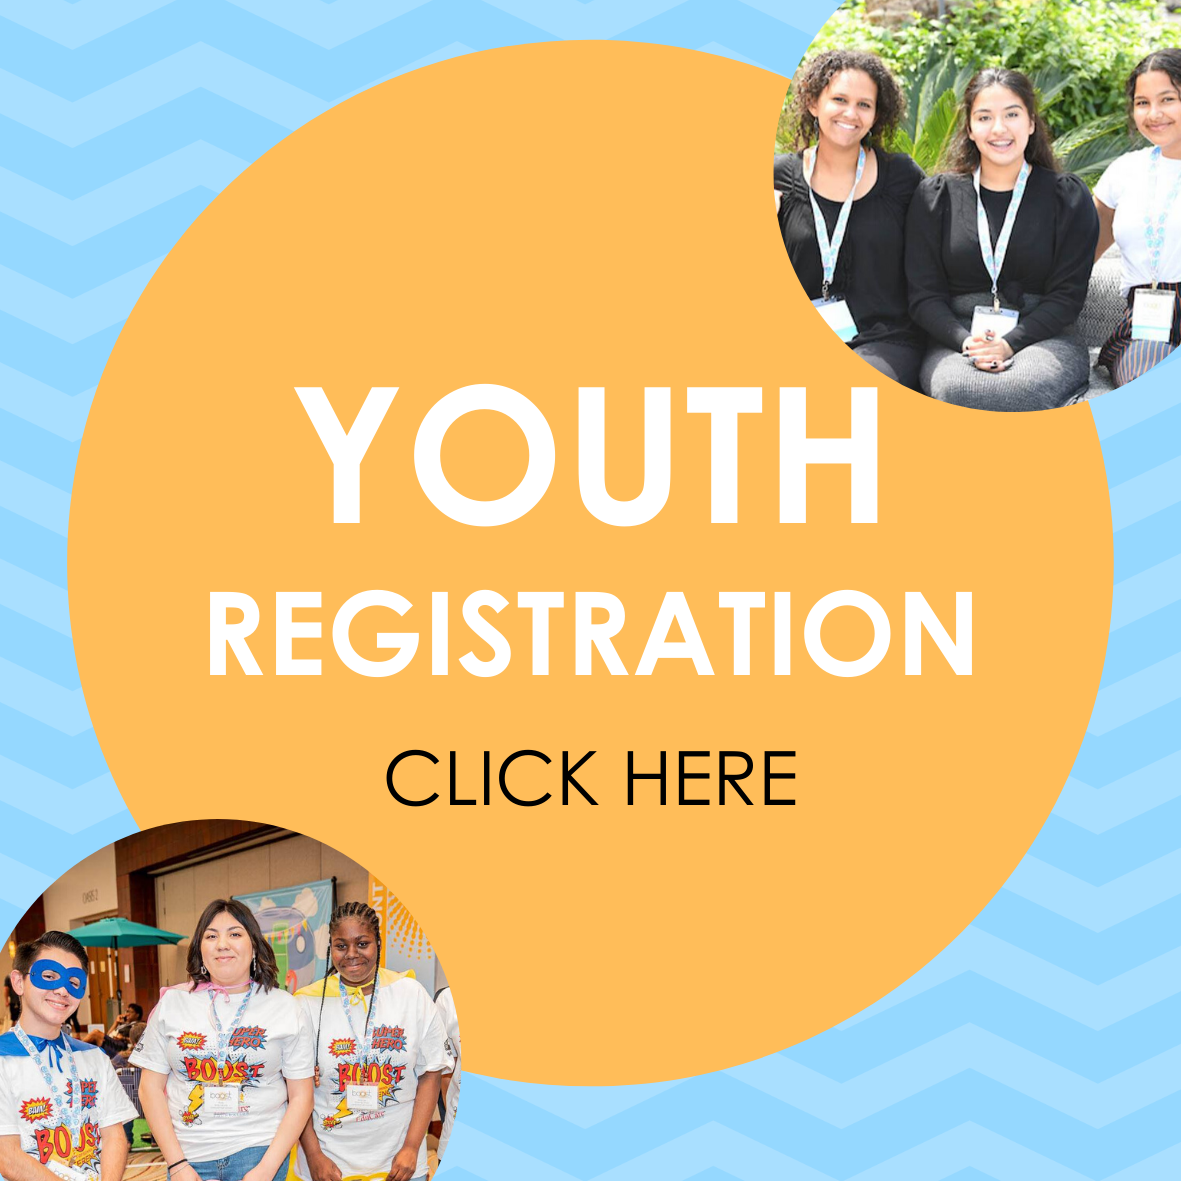 Youth registration button